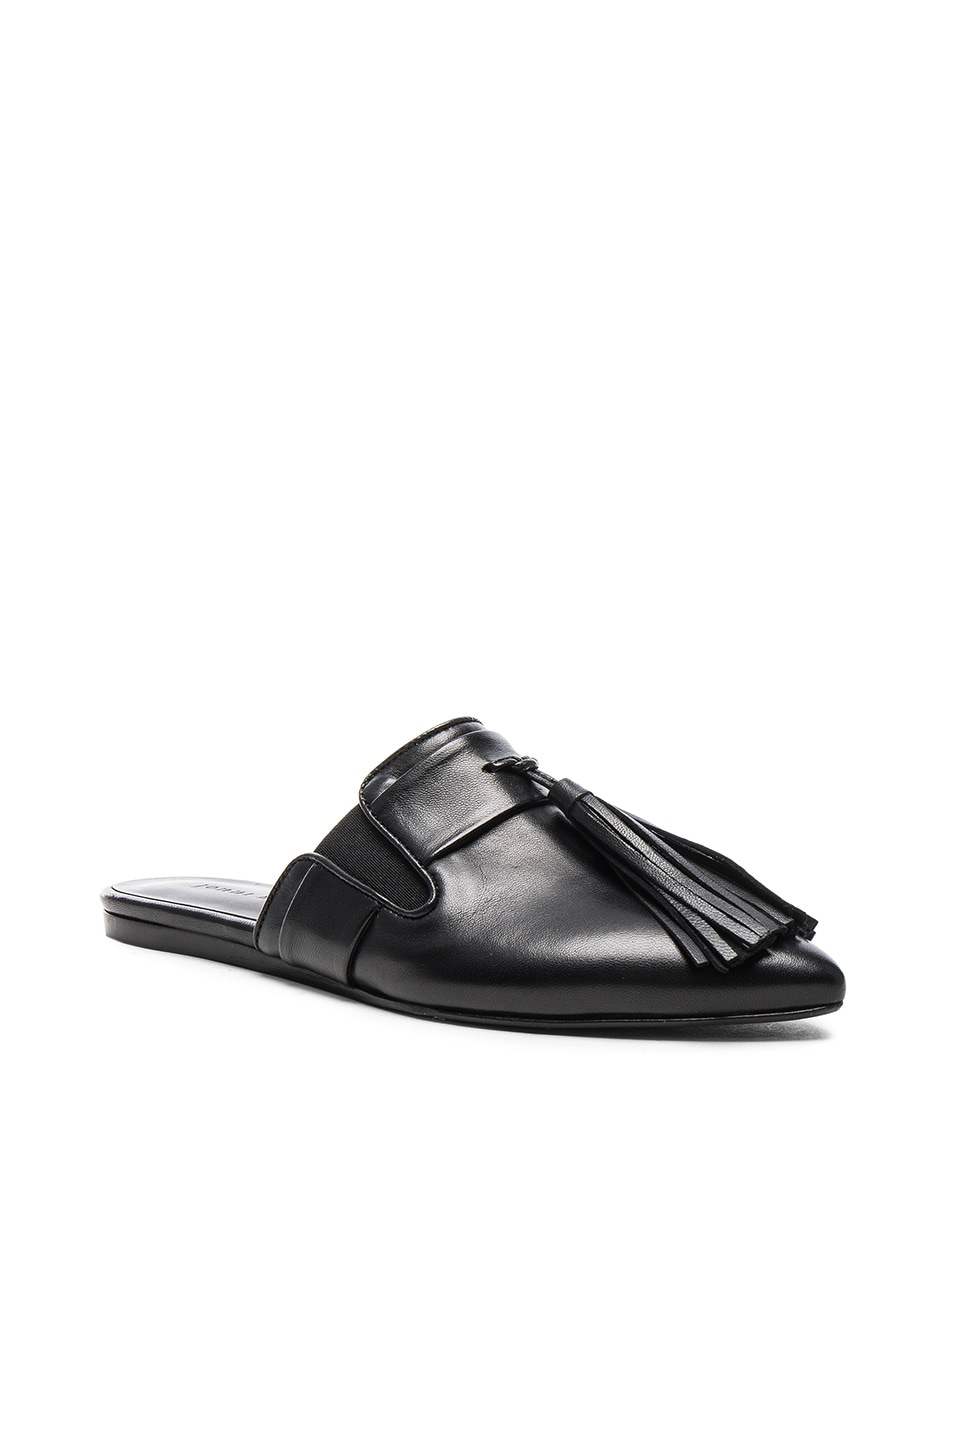 Image 2 of Jenni Kayne Leather Tassel Mules in Black